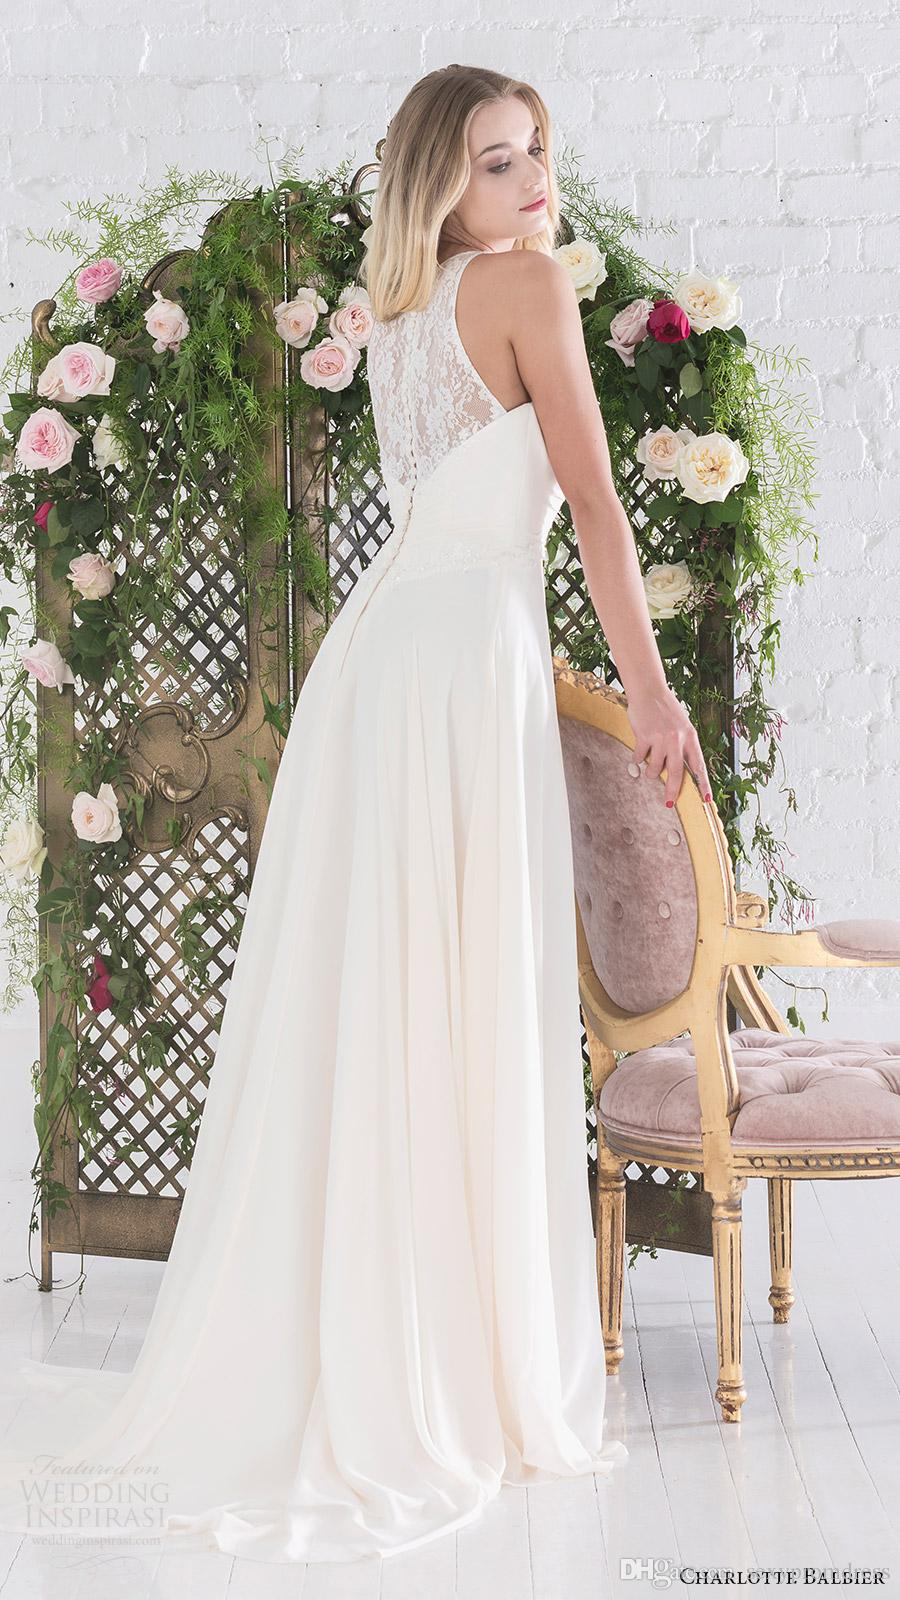 Simple Design Halter Beach Wedding Dresses 2016 Lace Sheer Neck Chiffon A Line Bridal Gowns Back Covered Buttons Floor Length Wedding Gowns